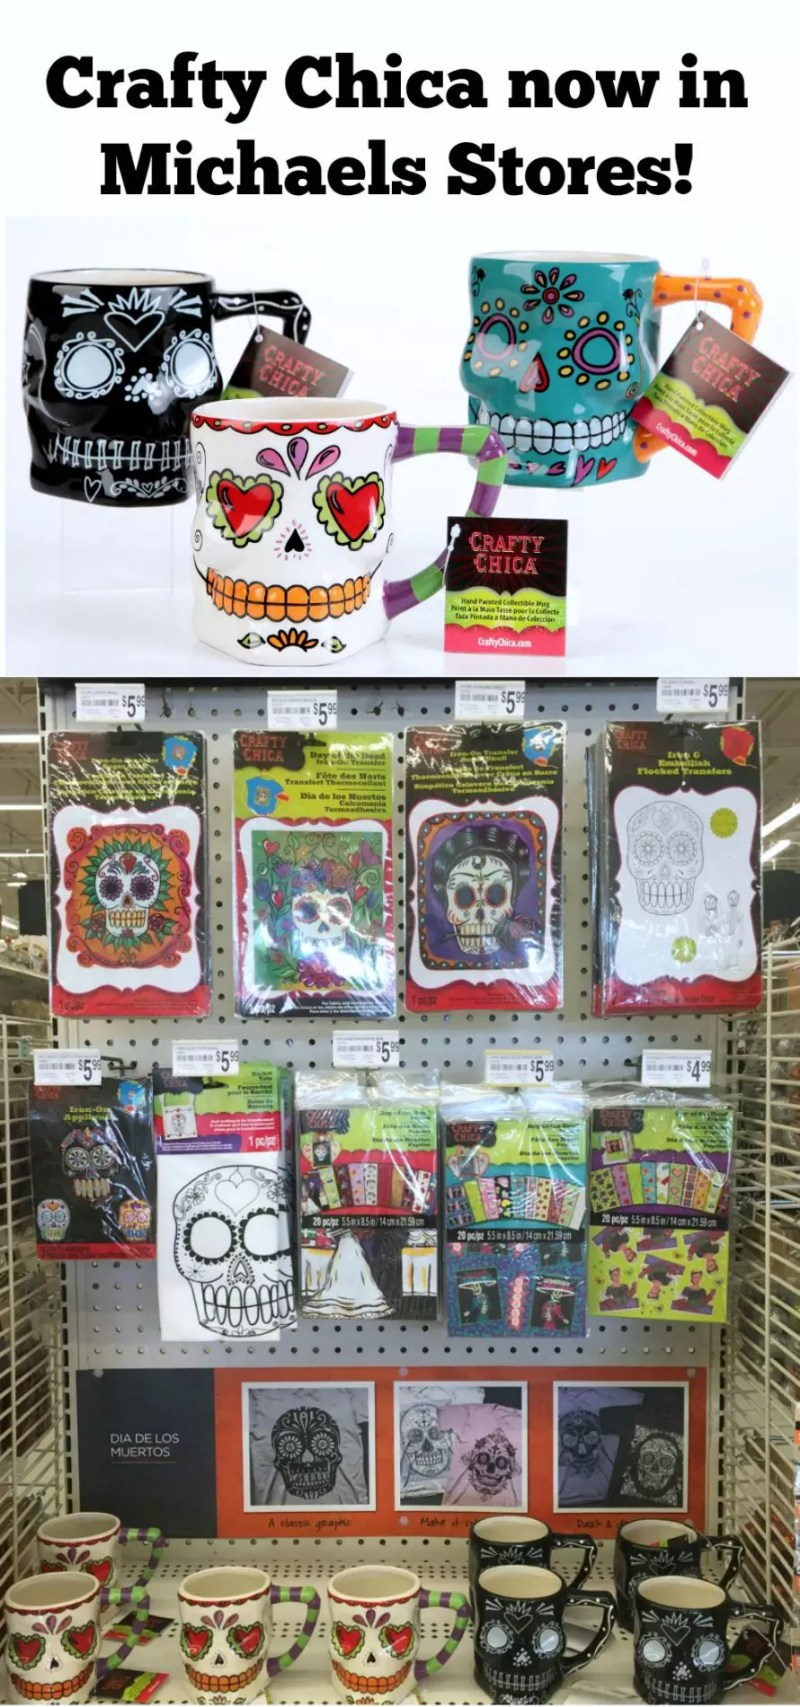 Crafty Chica products at Michaels